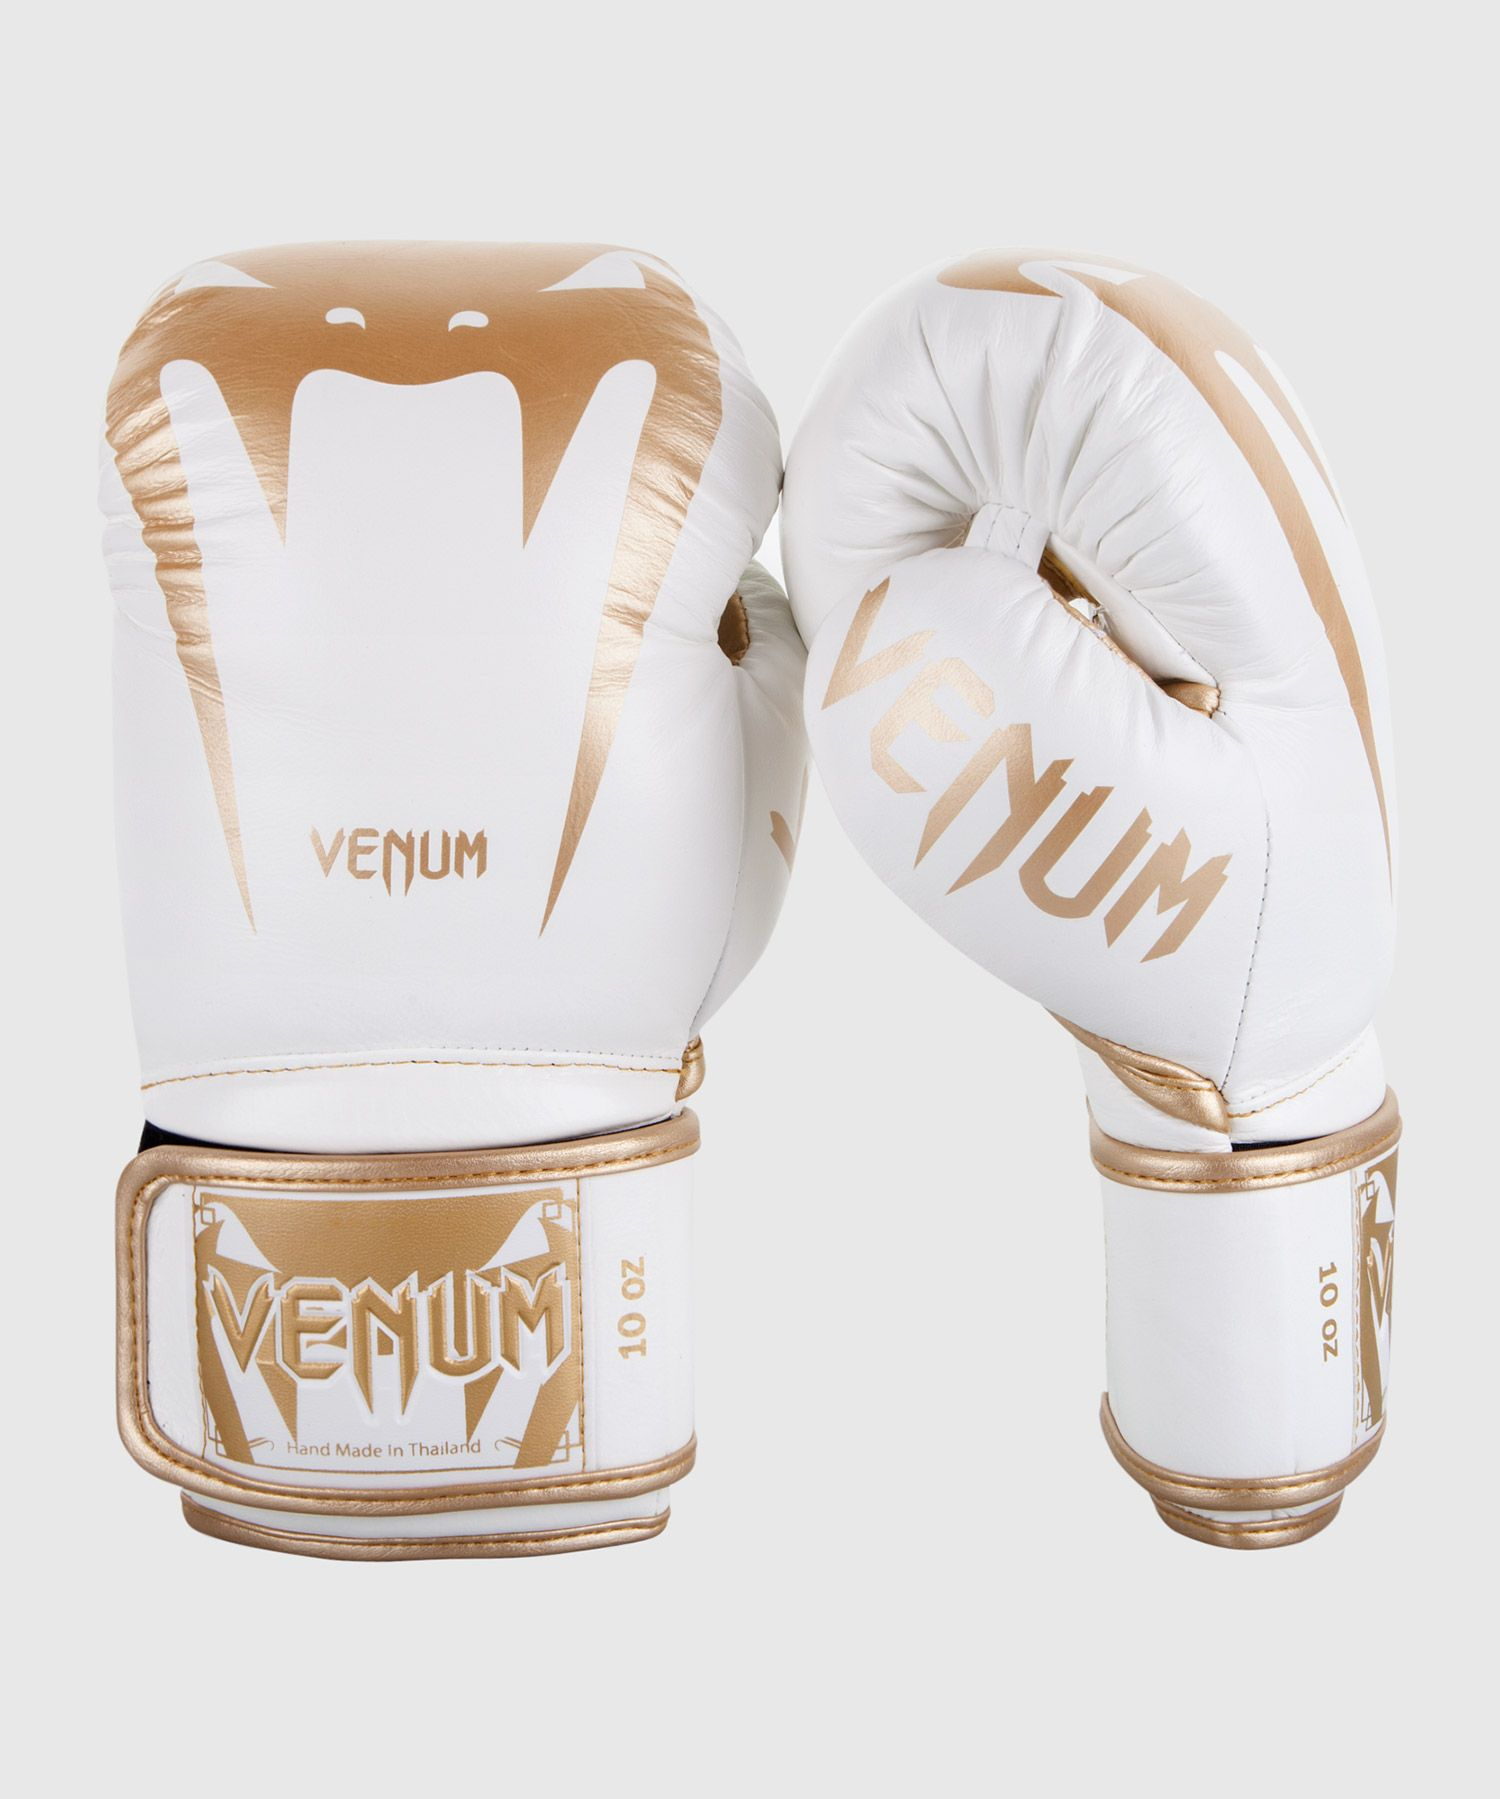 Venum Giant 3.0 Boxing Gloves - Nappa Leather - White/Gold